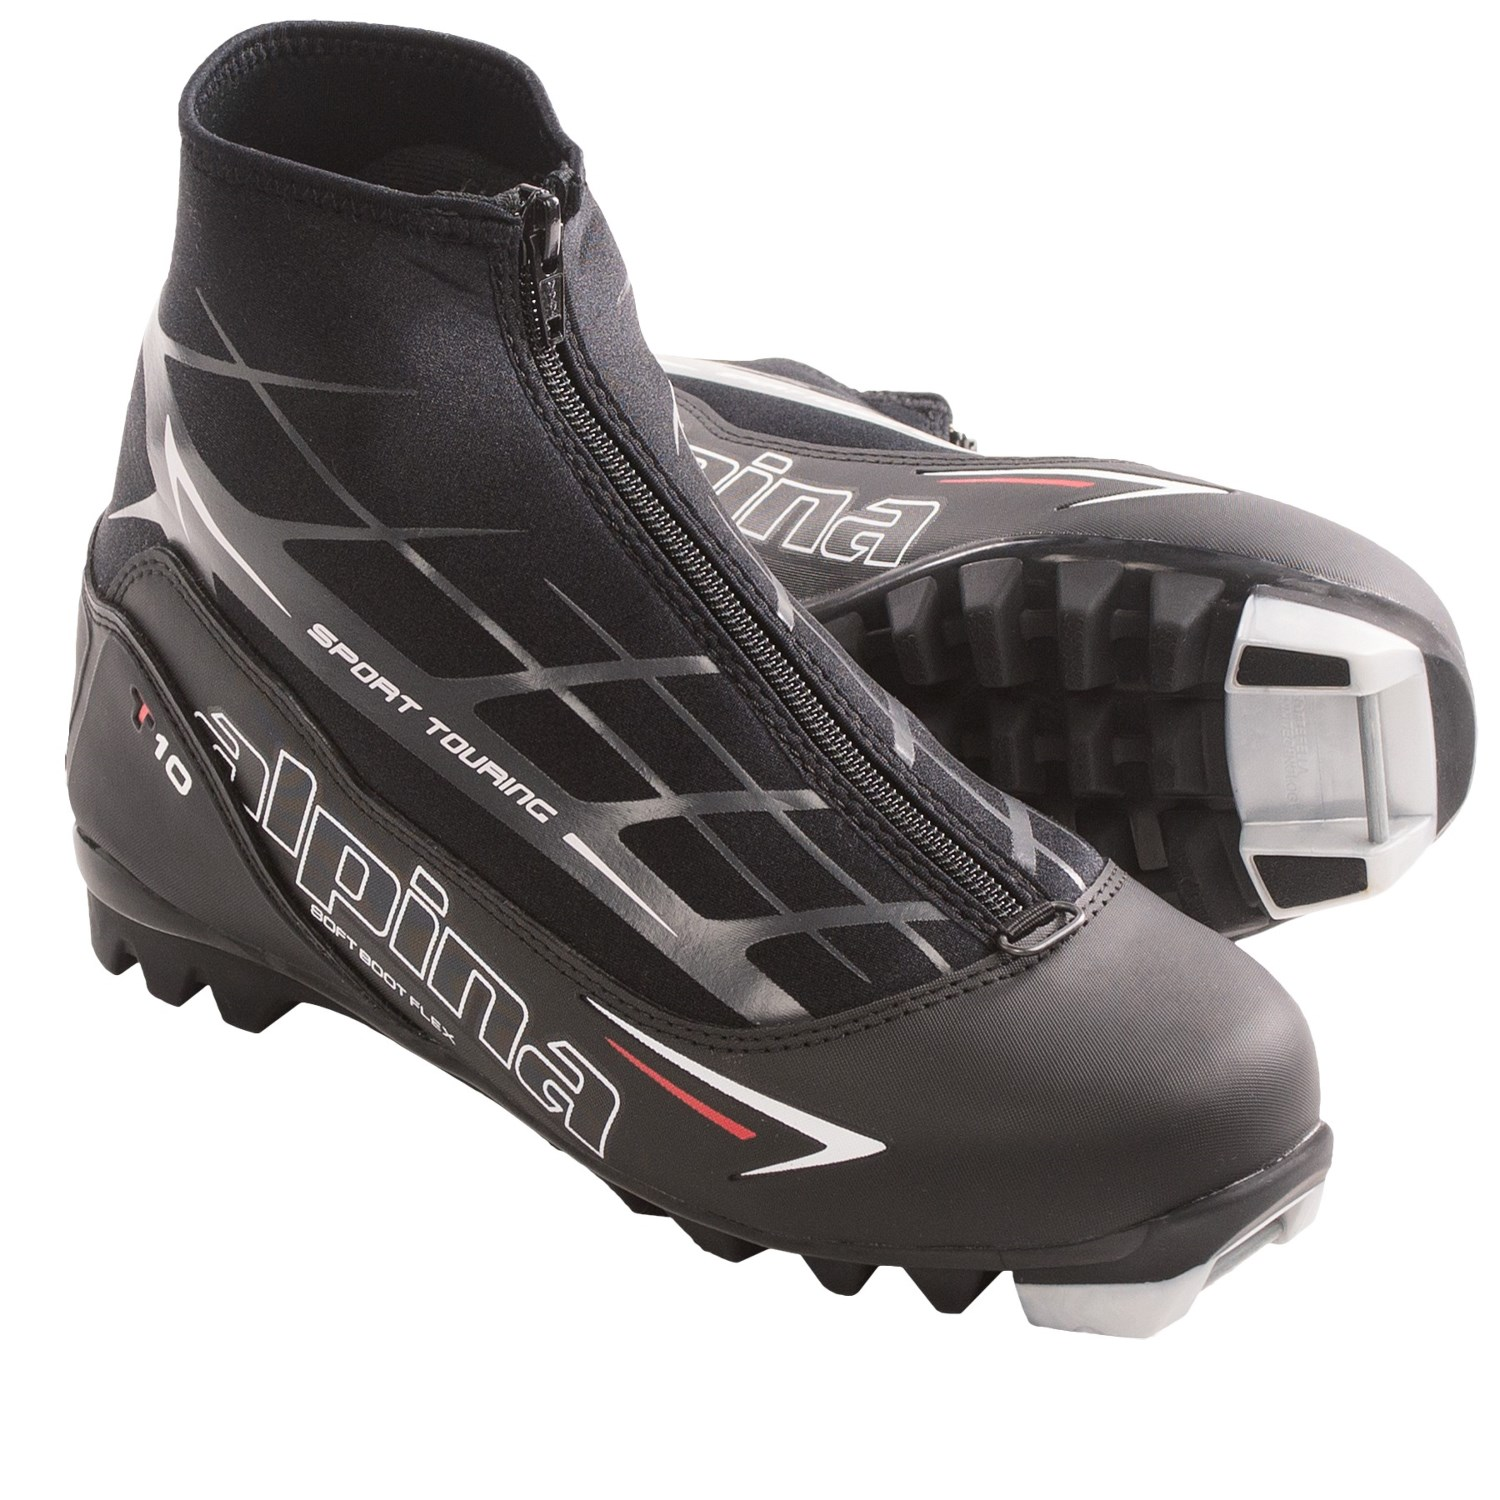 Alpina T Touring Ski Boots For Men And Women Save - Alpina boots